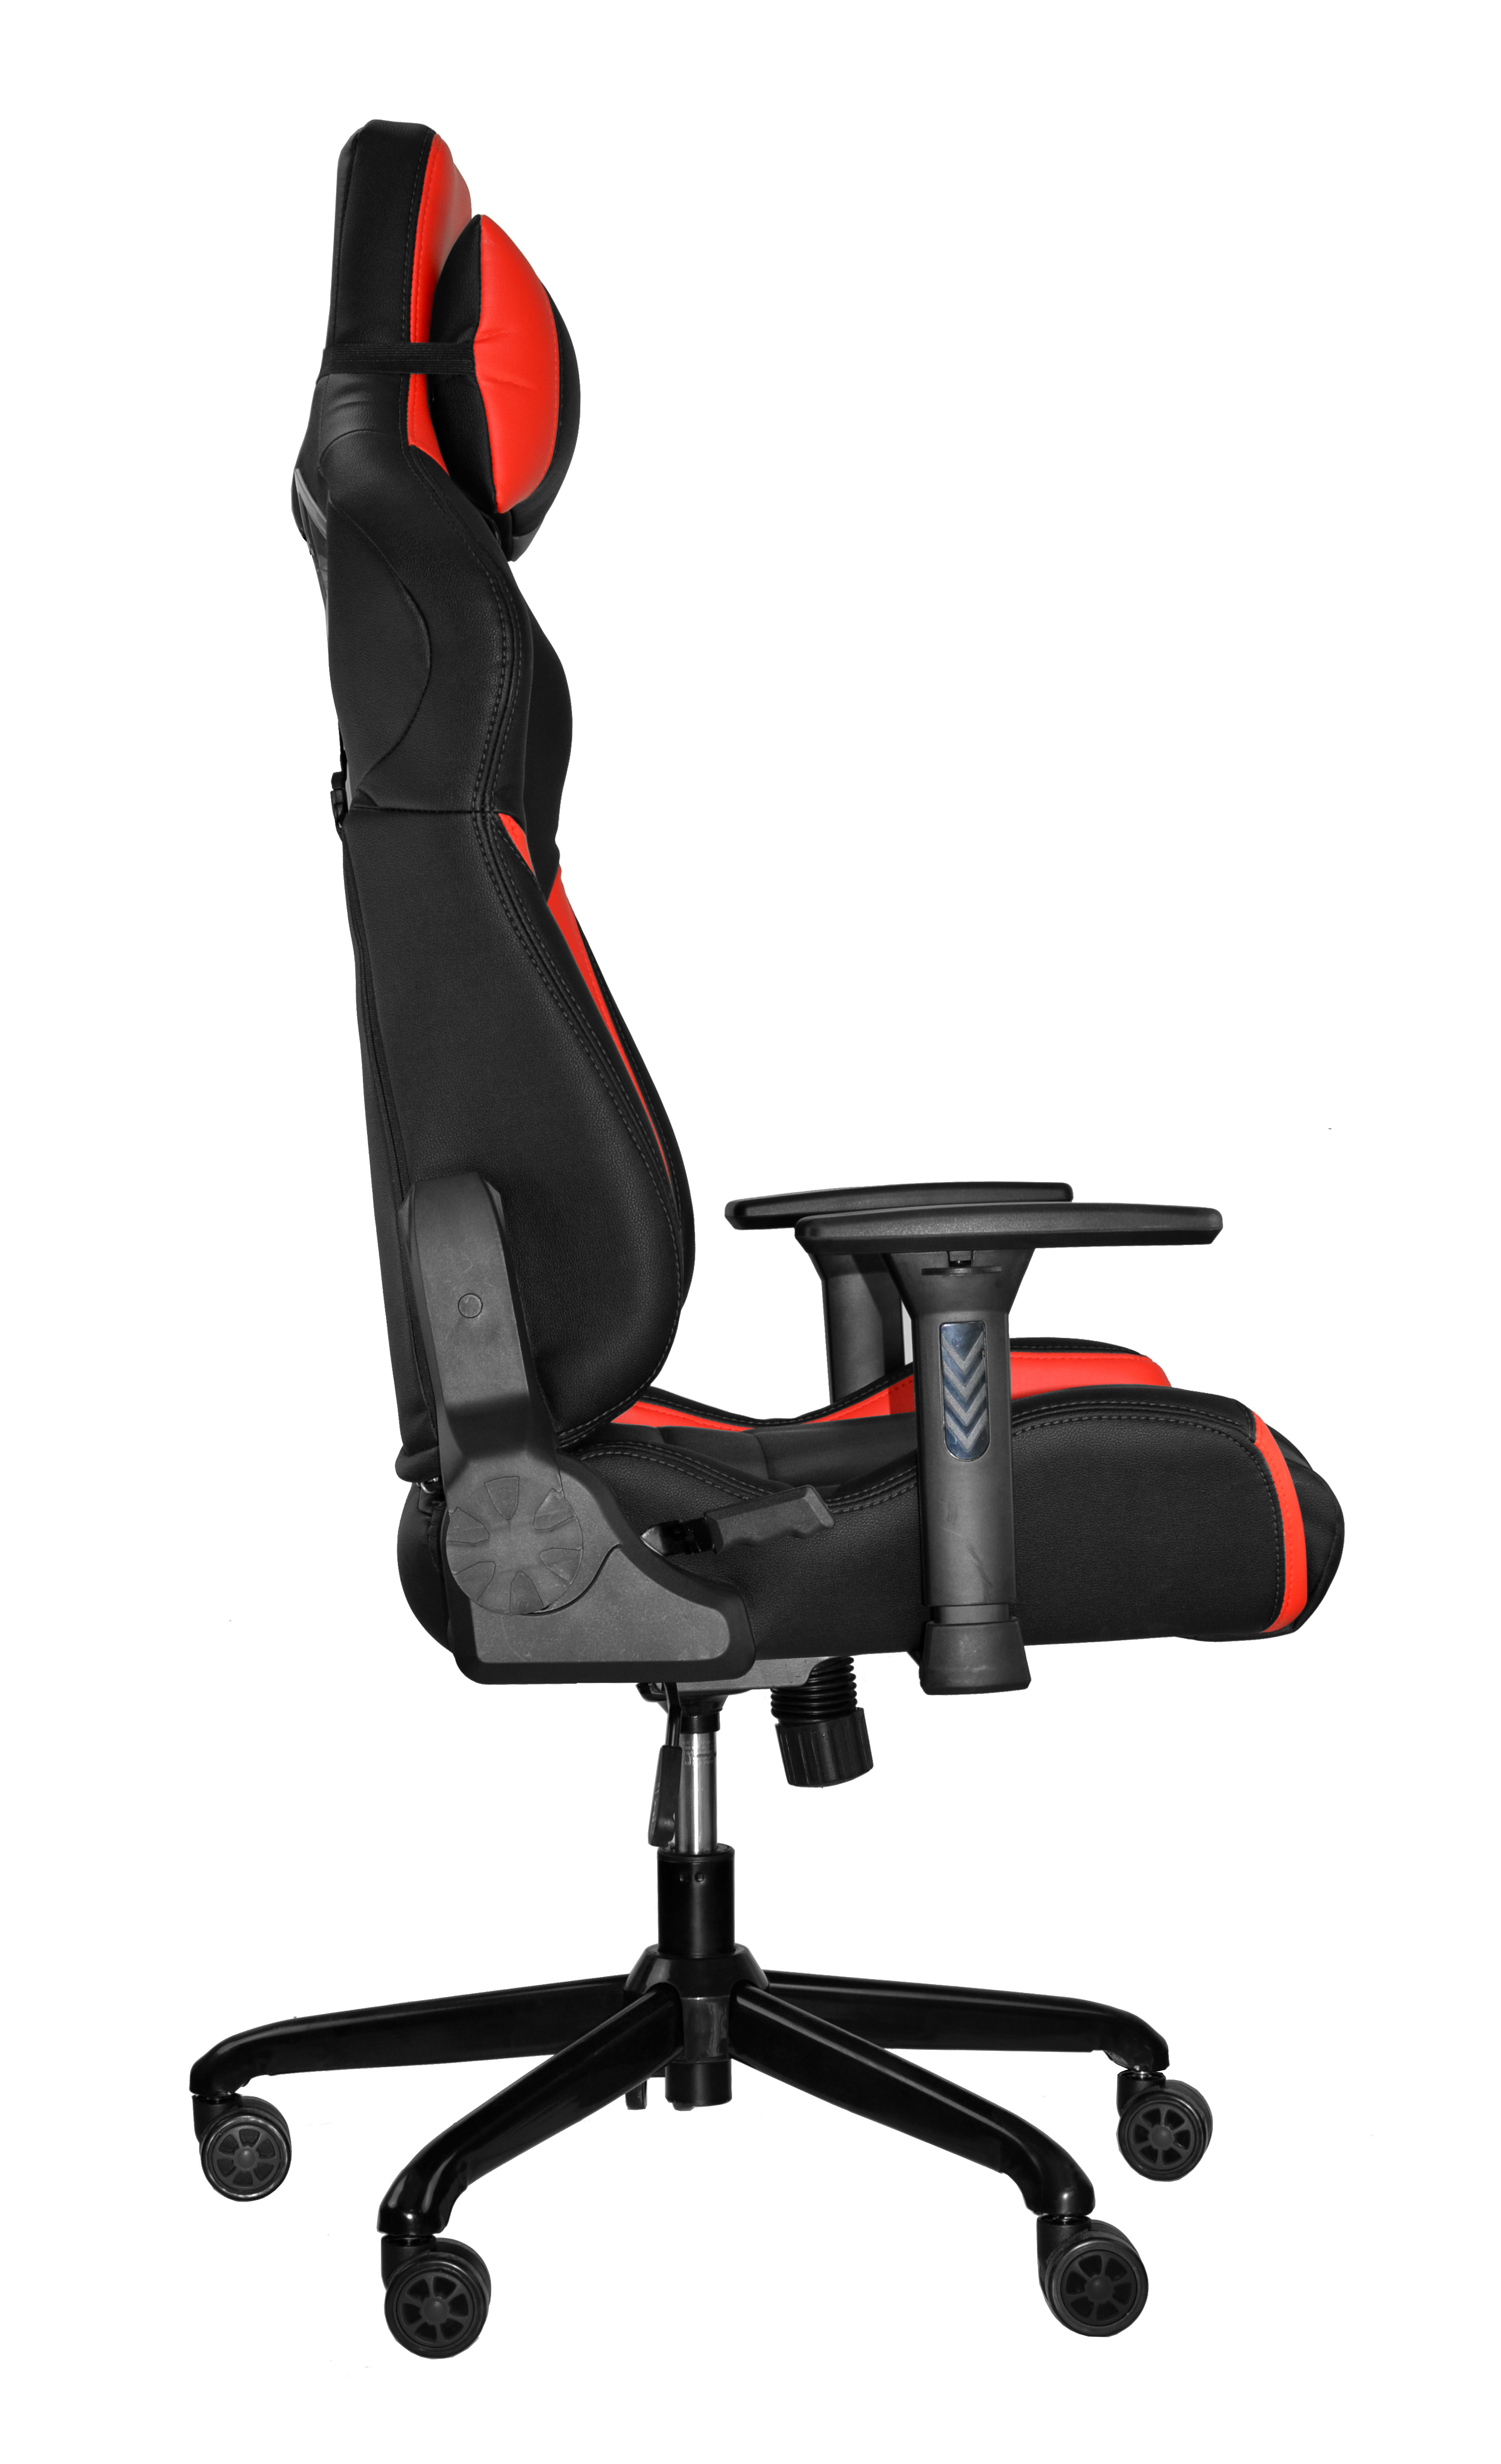 Strange R1 Racing Style Gaming Chair With Colorful Rgb Lights Lumbar Support Red Black Sold By Xtrempro Alphanode Cool Chair Designs And Ideas Alphanodeonline